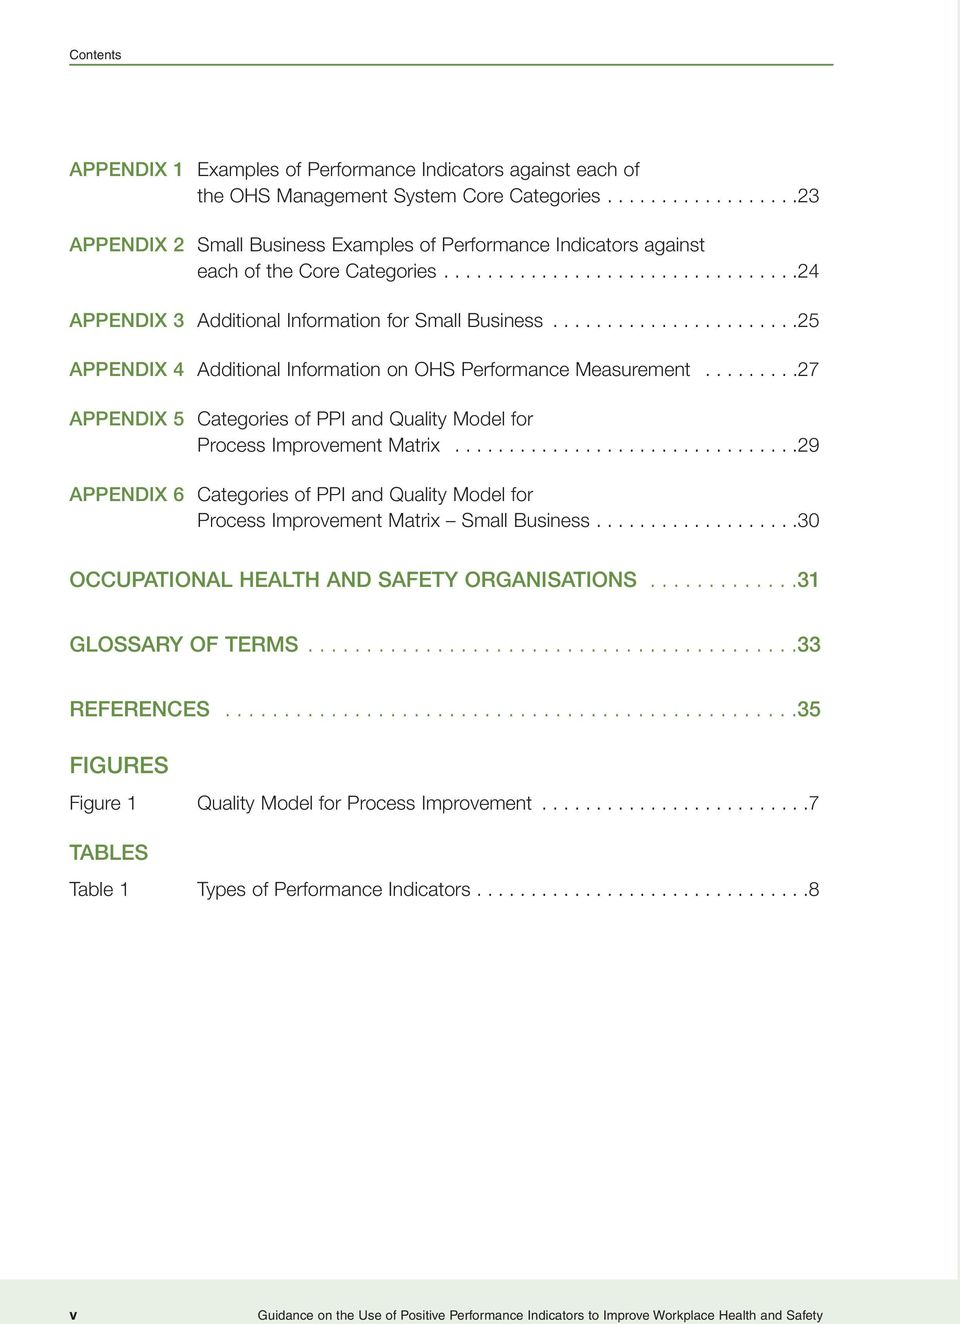 ......................25 APPENDIX 4 Additional Information on OHS Performance Measurement.........27 APPENDIX 5 Categories of PPI and Quality Model for Process Improvement Matrix.